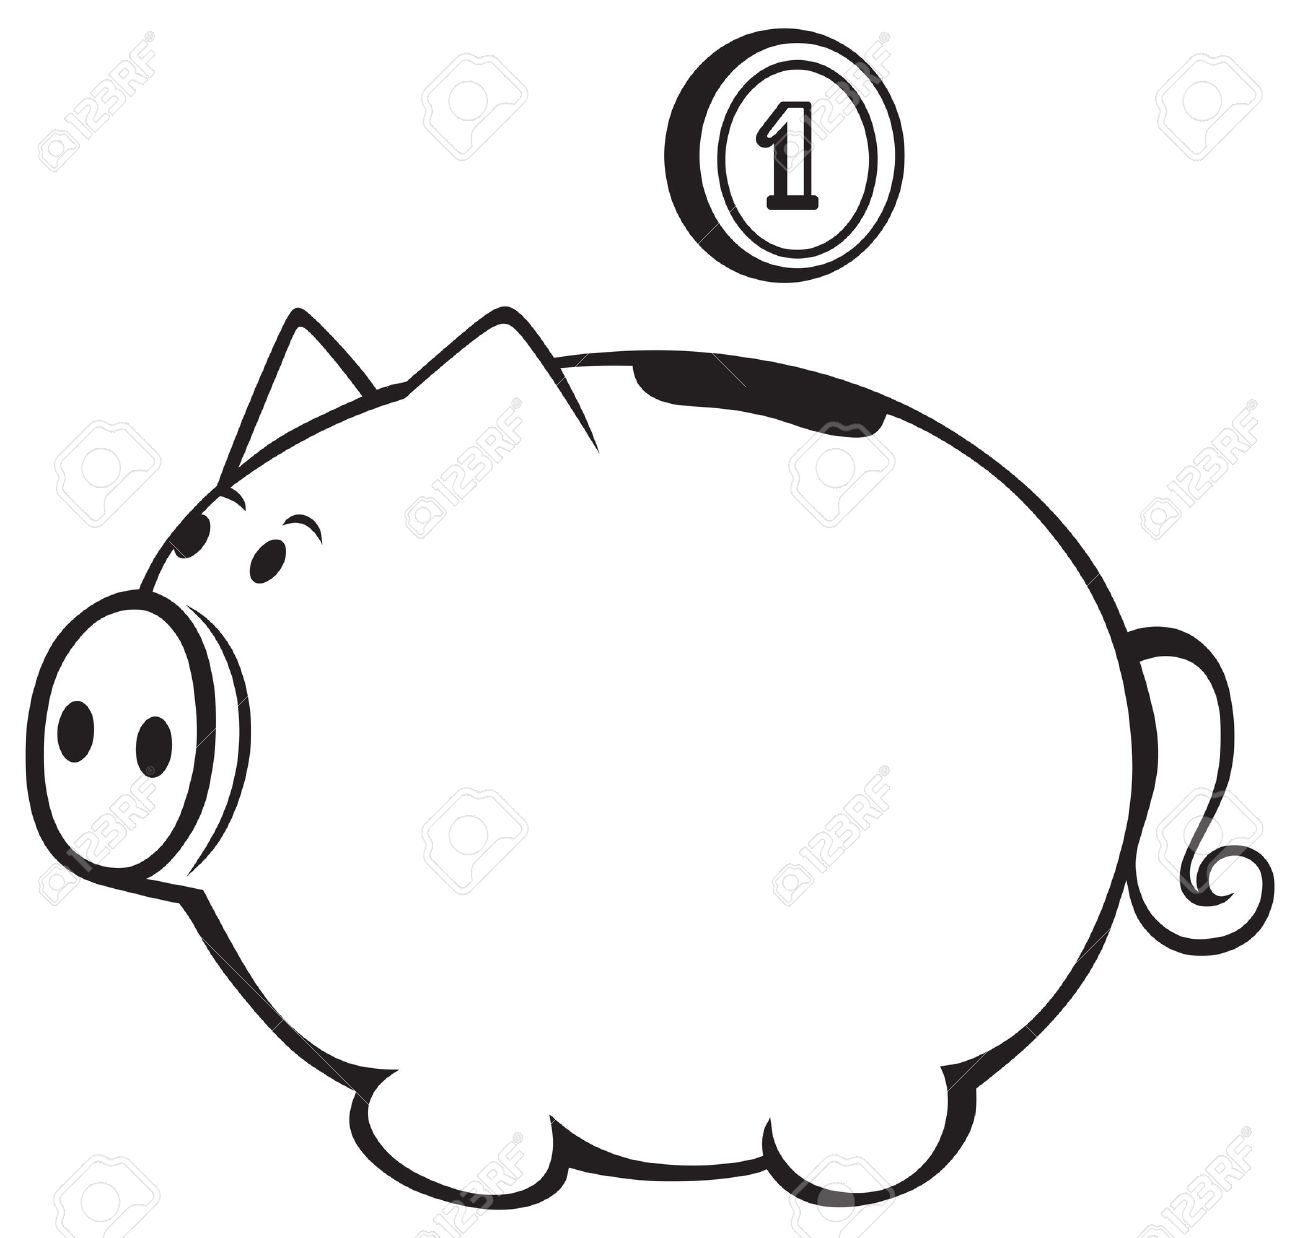 Black and white piggy bank clipart.